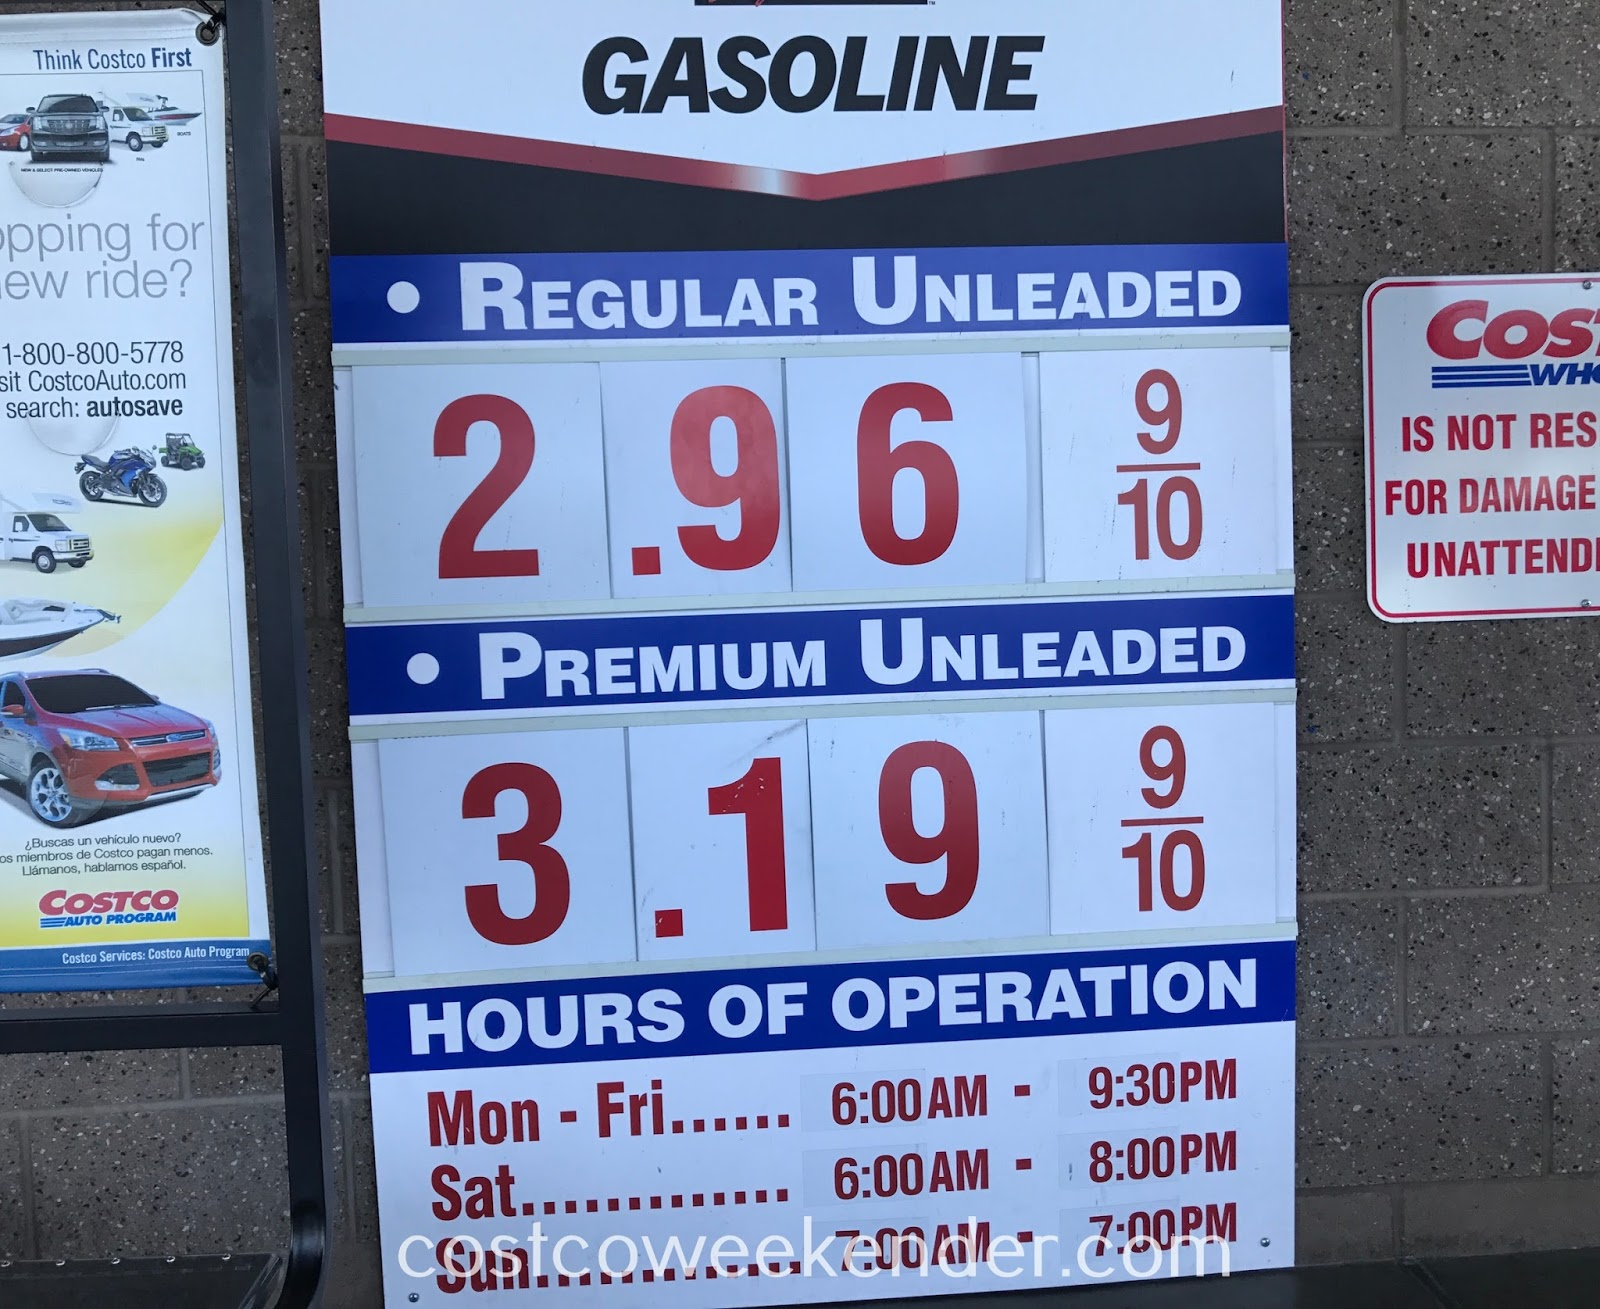 Costco gas for November 5, 2017 at Redwood City, CA